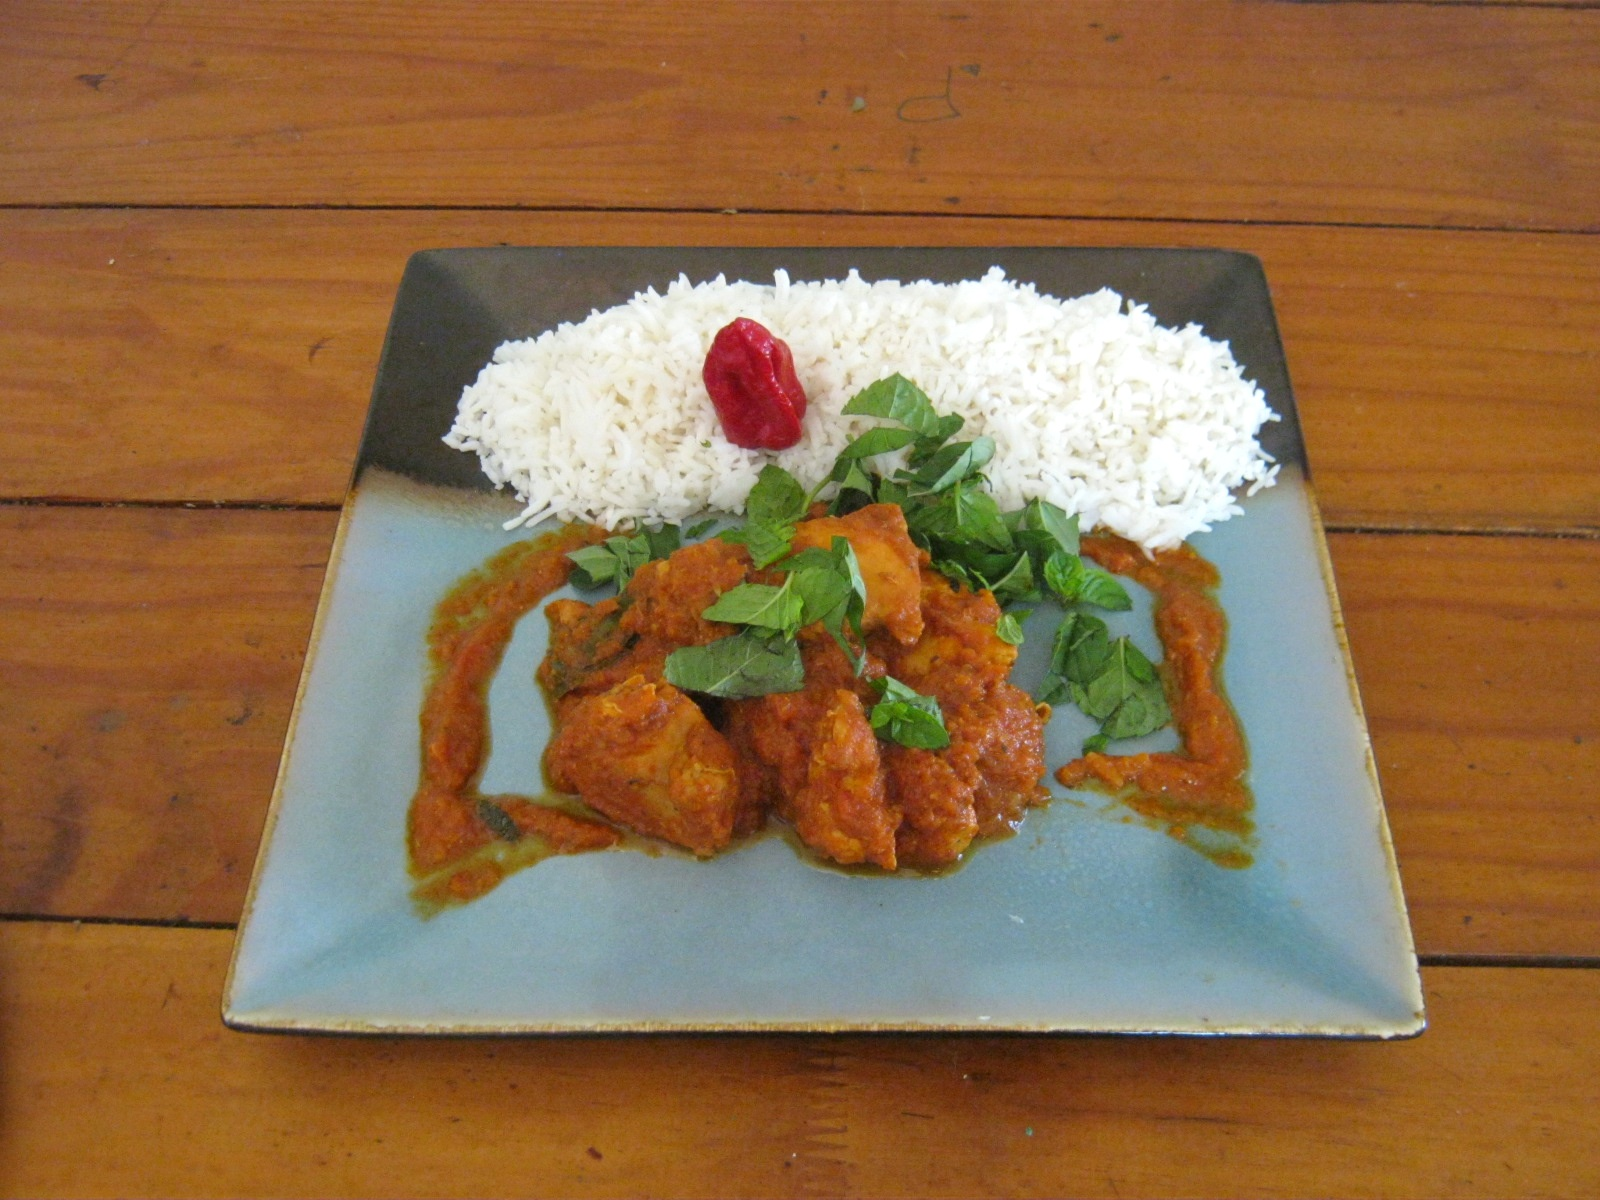 Spicy Madras chicken curry on a plate